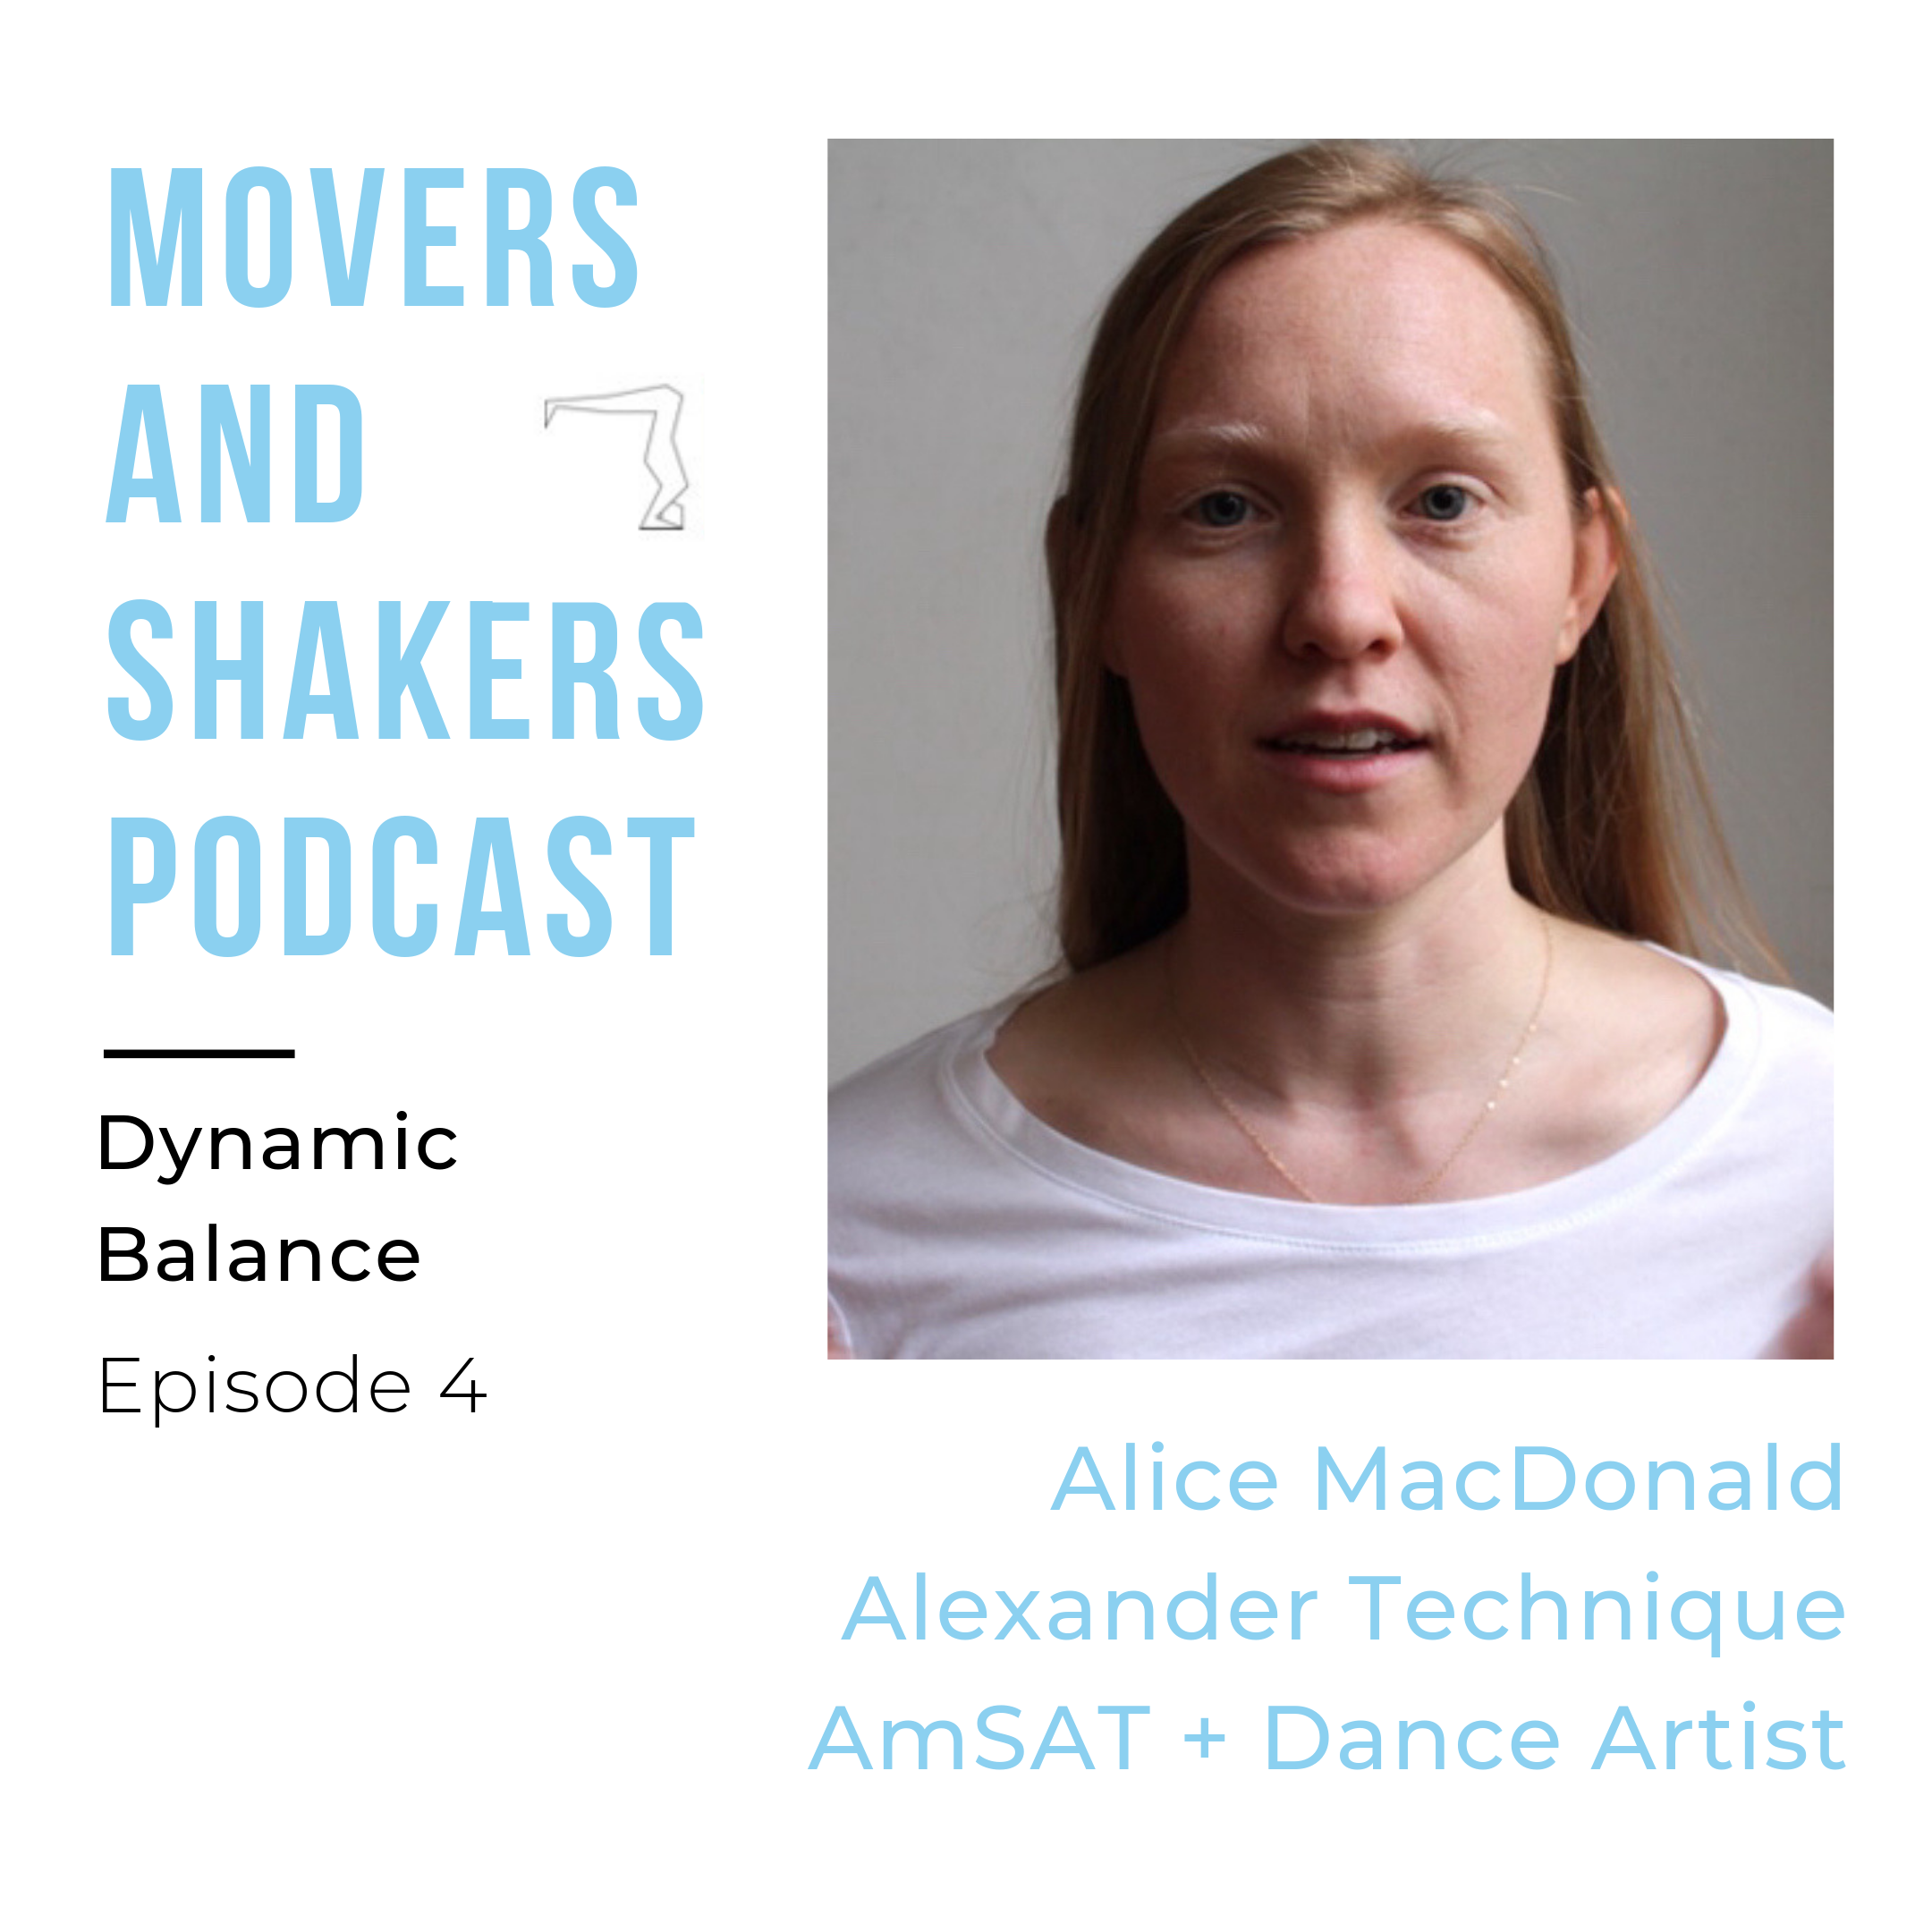 balance movers and shakers podcast - melanie holst collins grow your lovespace